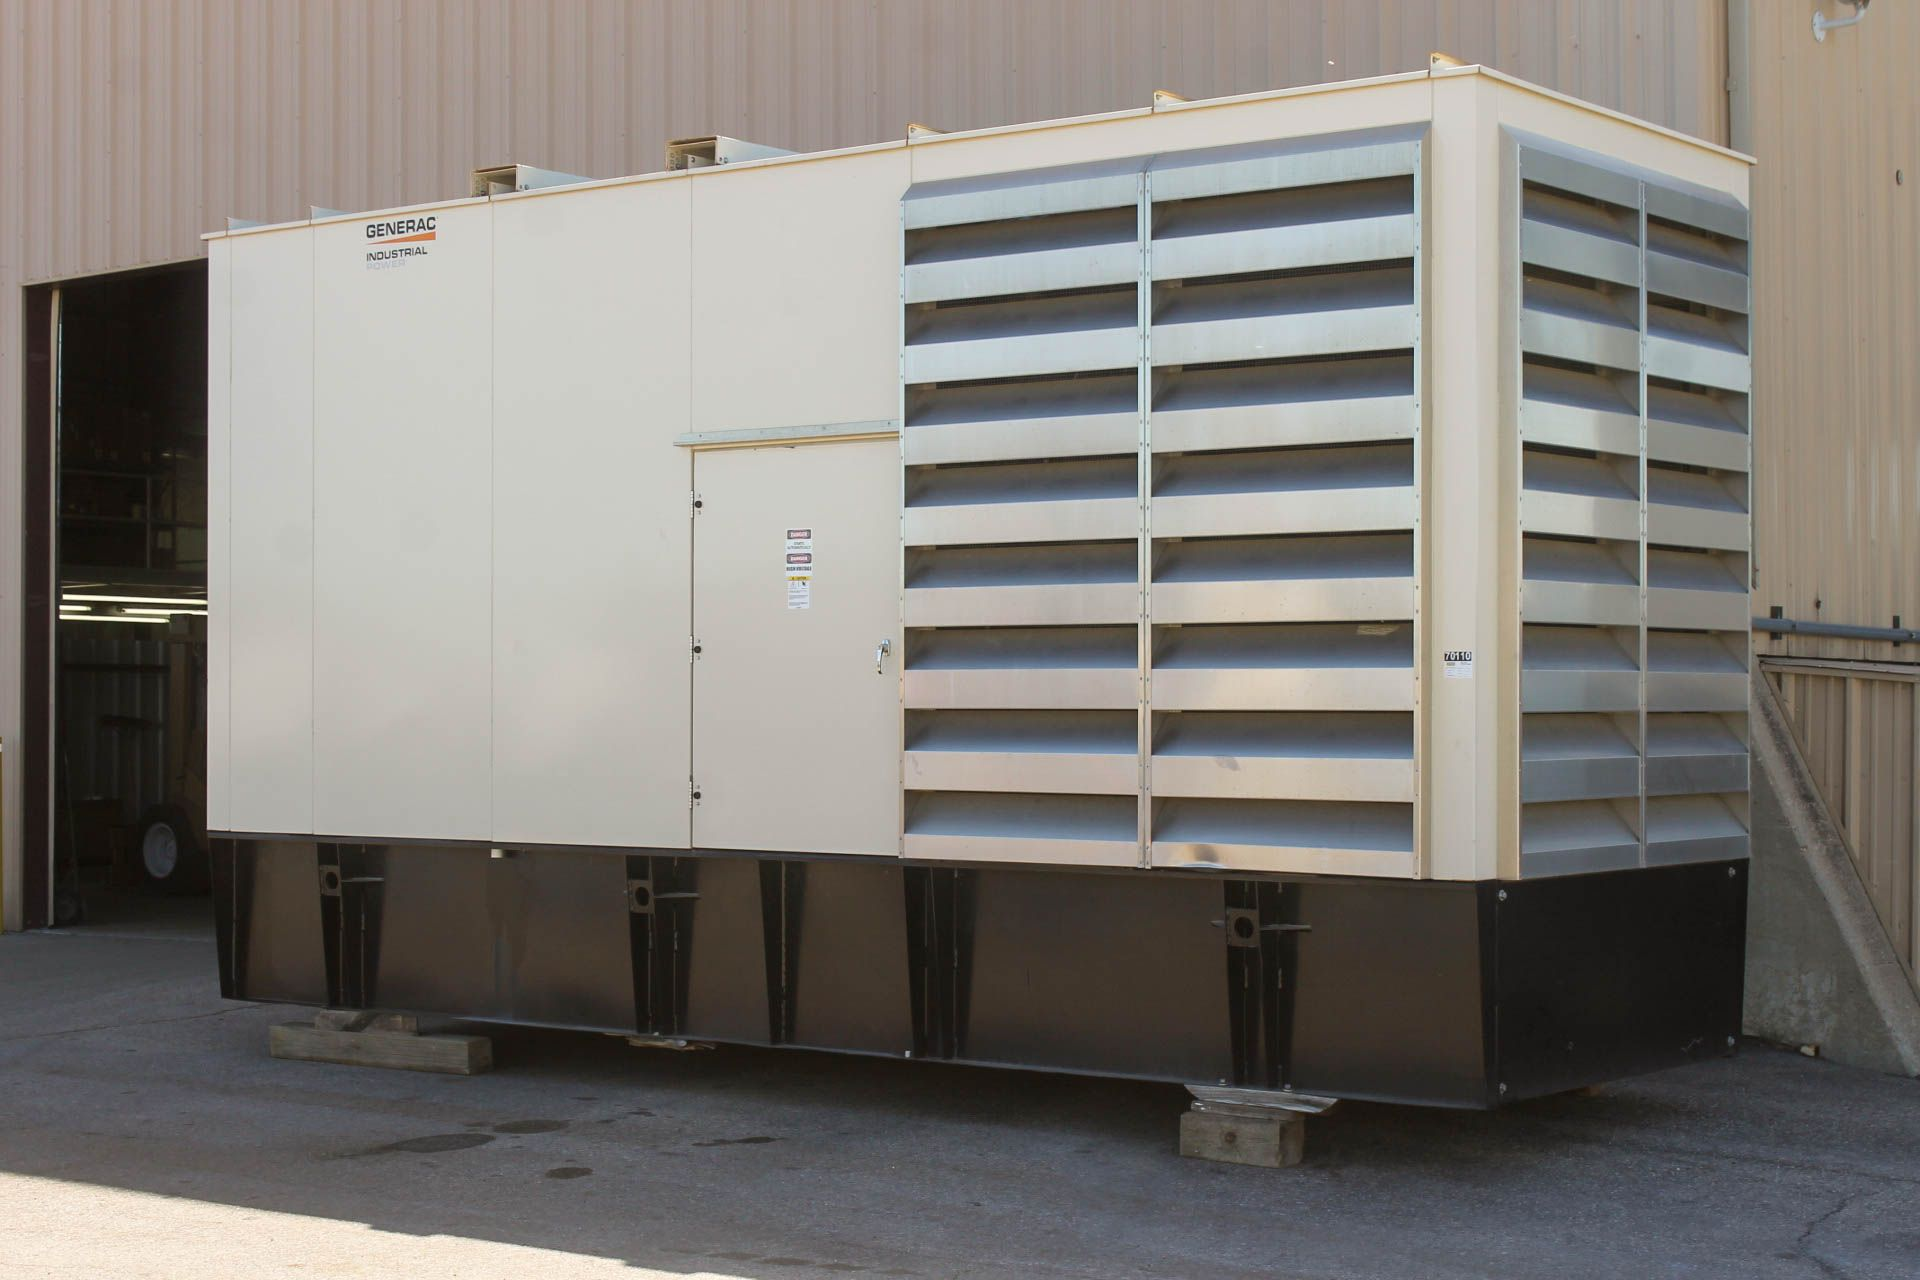 Kohler 750 kW DieselGenerator with full enclosure